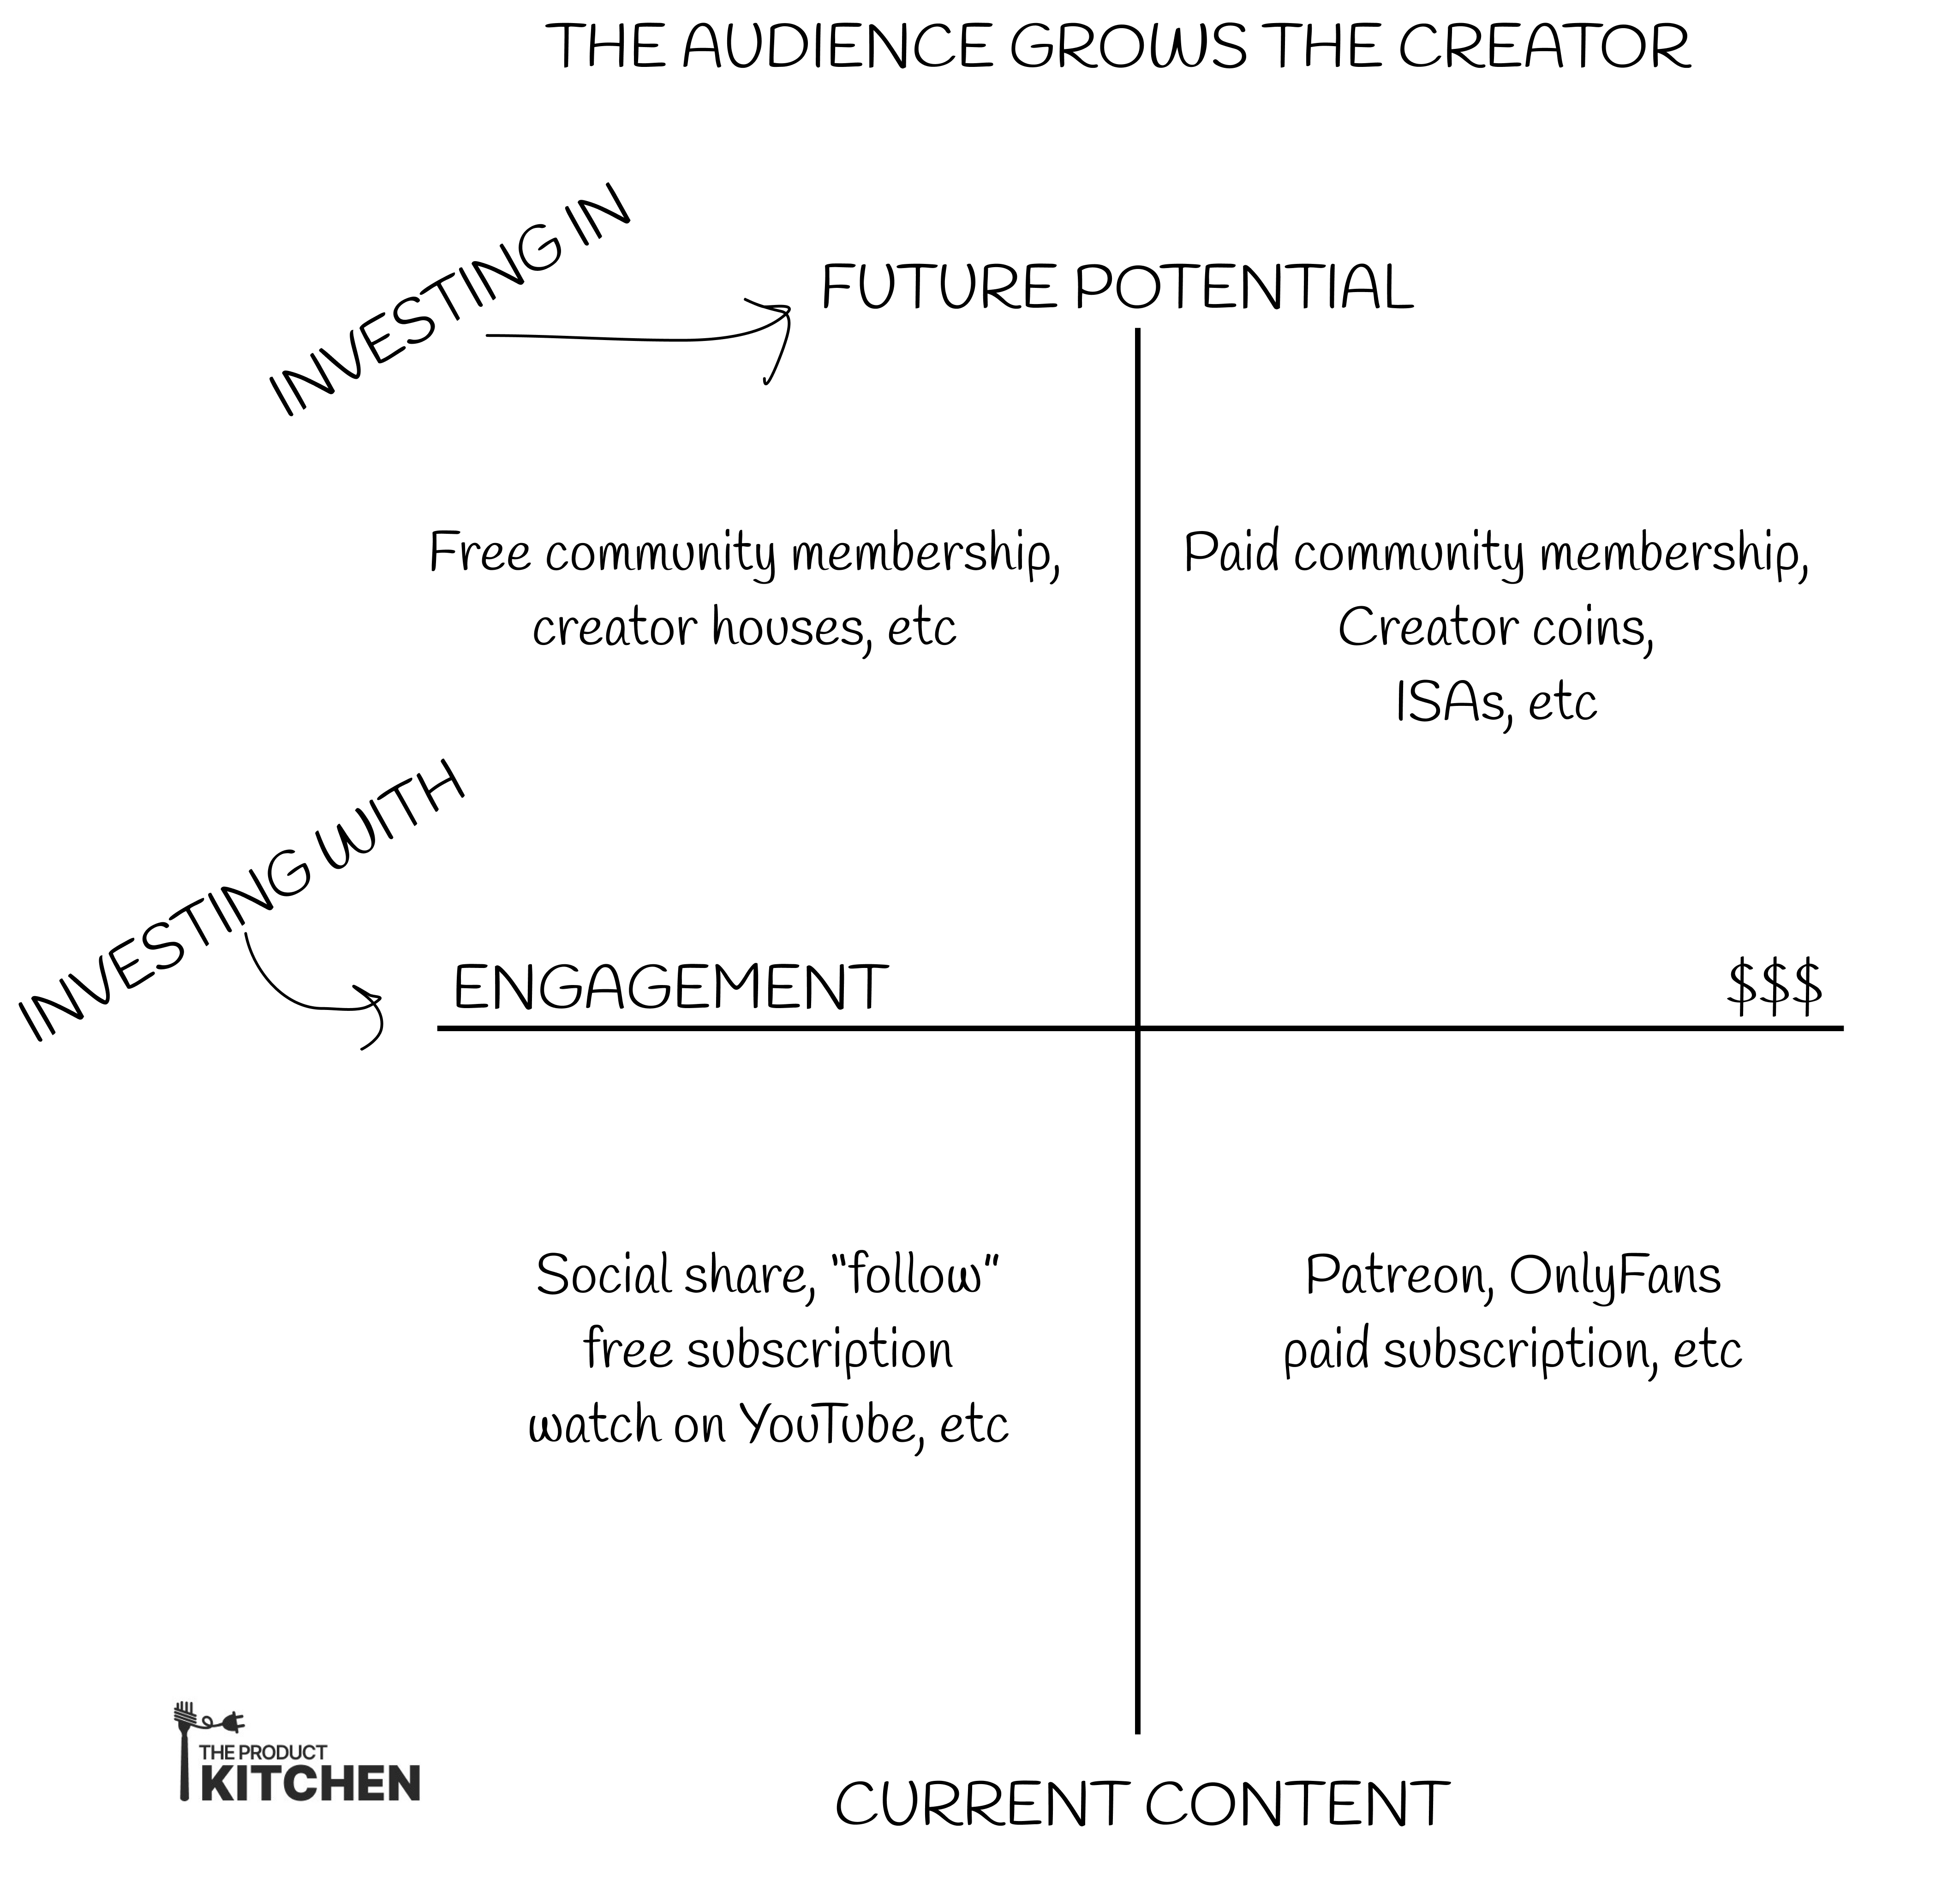 The audience grows the creator, part 1